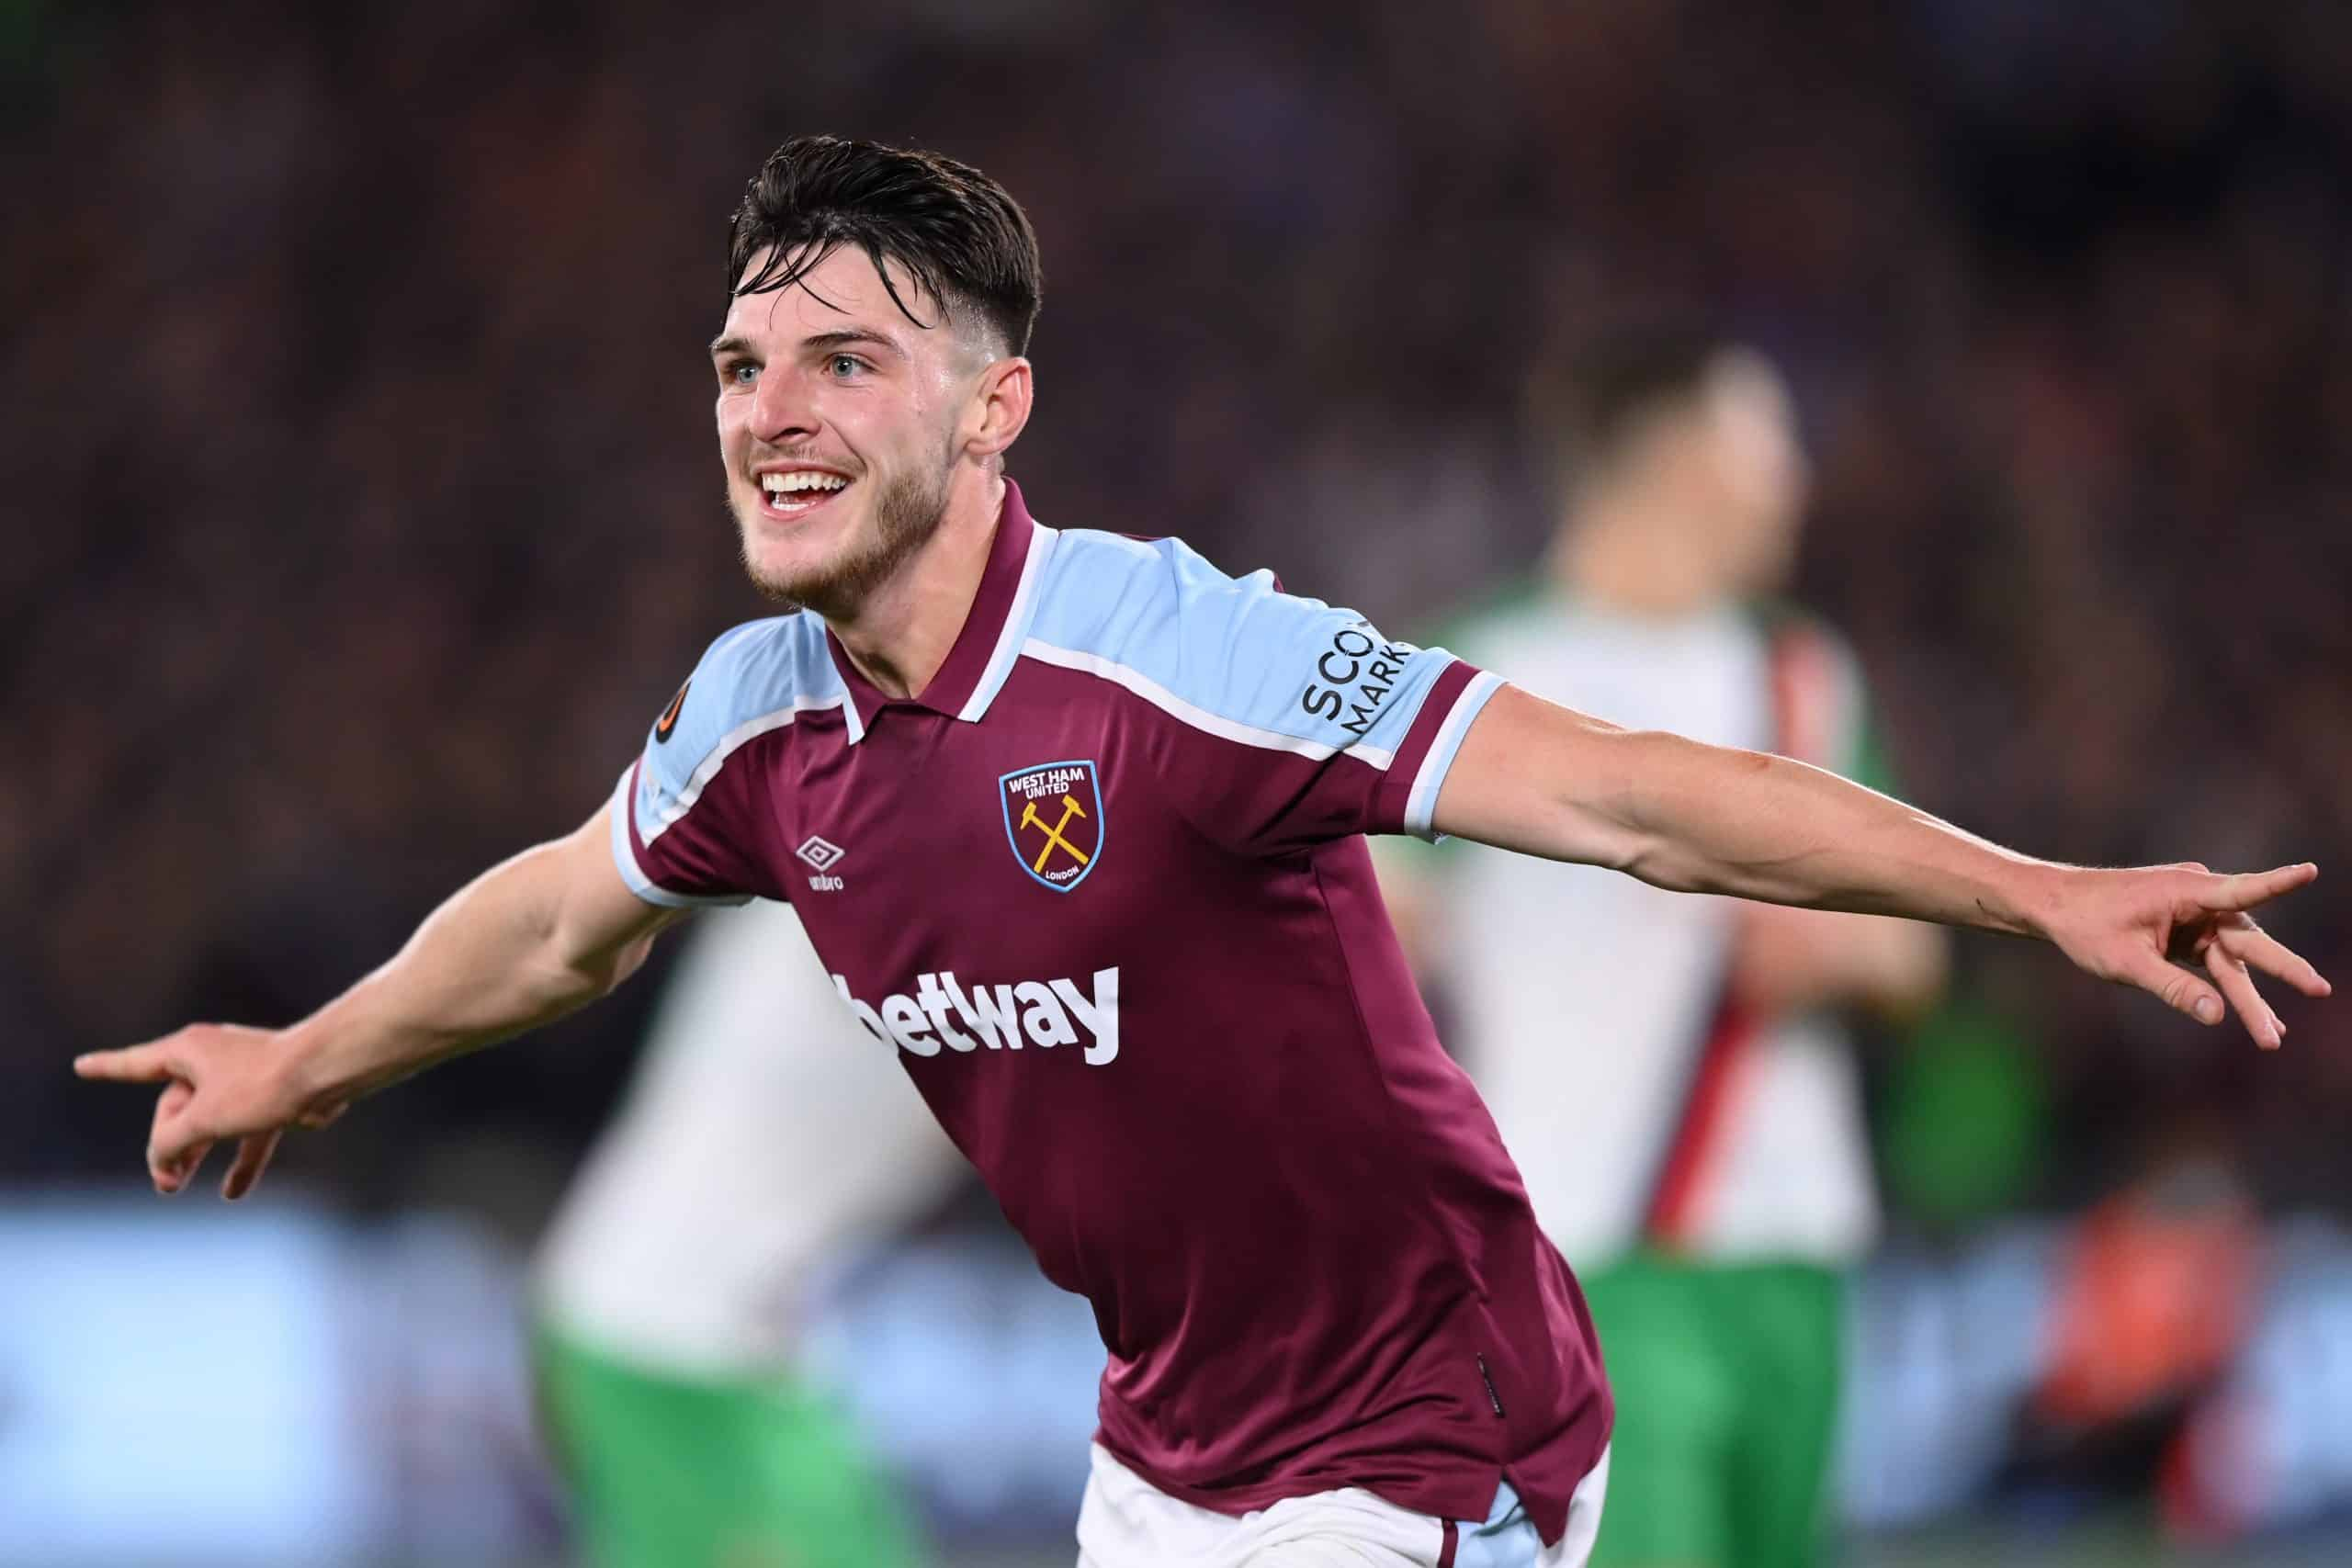 West Ham United vs Brentford betting tips: Preview, predictions & odds